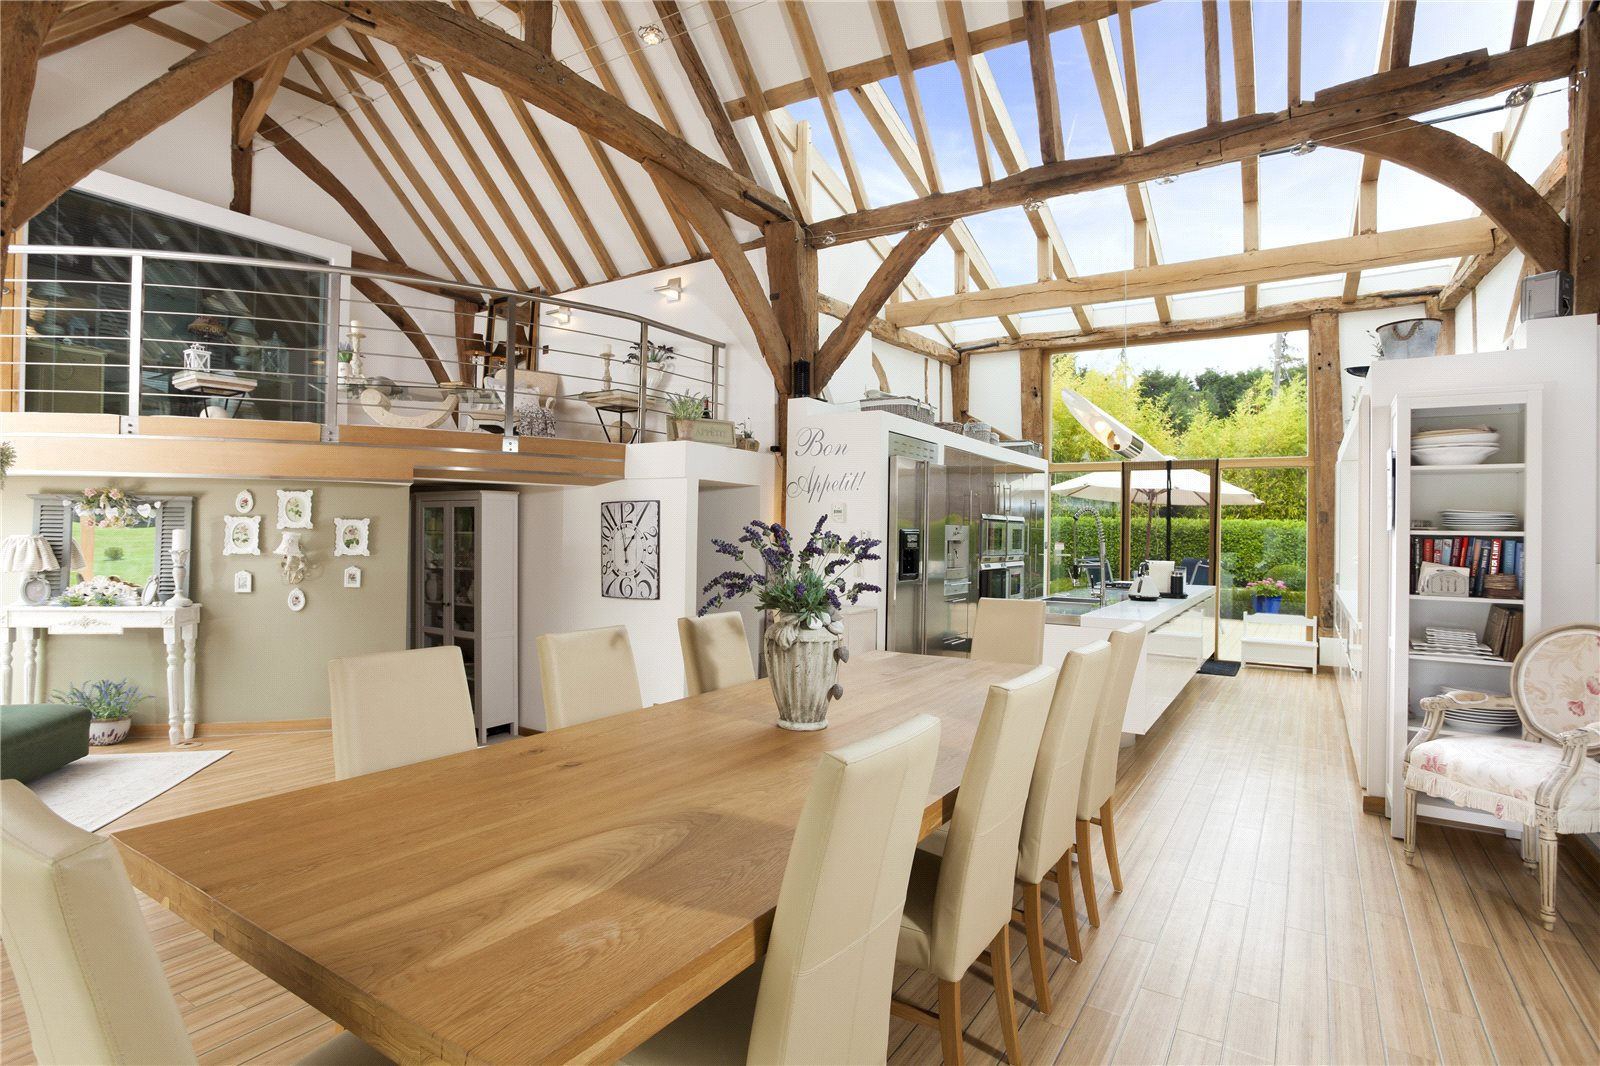 This impeccable barn conversion in the English village of Upper Harbledown, Kent, has been fitted with a sophisticated smart-home system, featuring Evolution by Mode LED lighting panels.